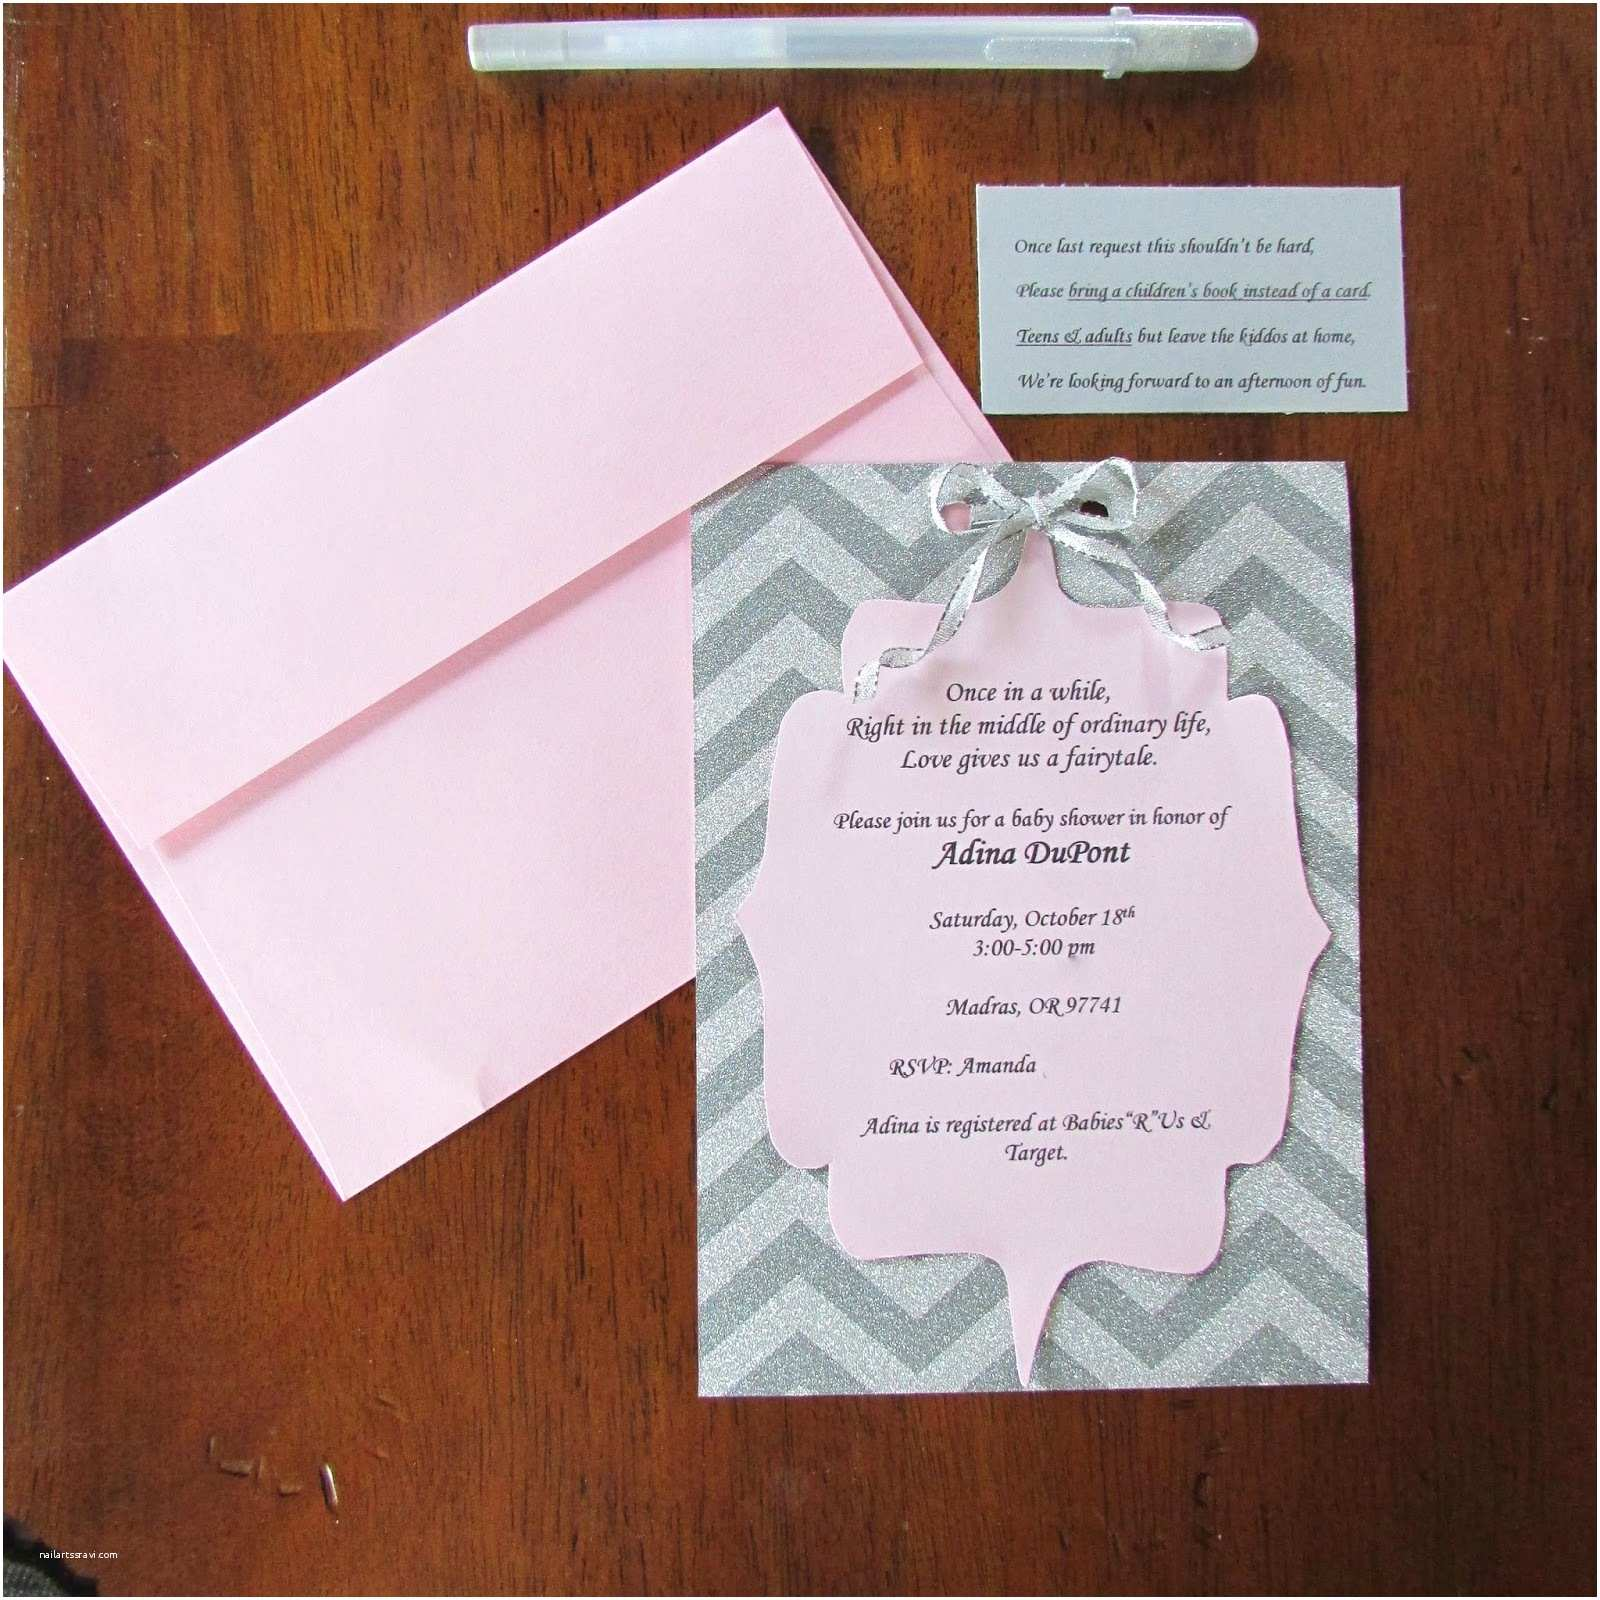 Diy Baby Shower Invitations the Boisebombshell Diy Fairytale themed Baby Shower